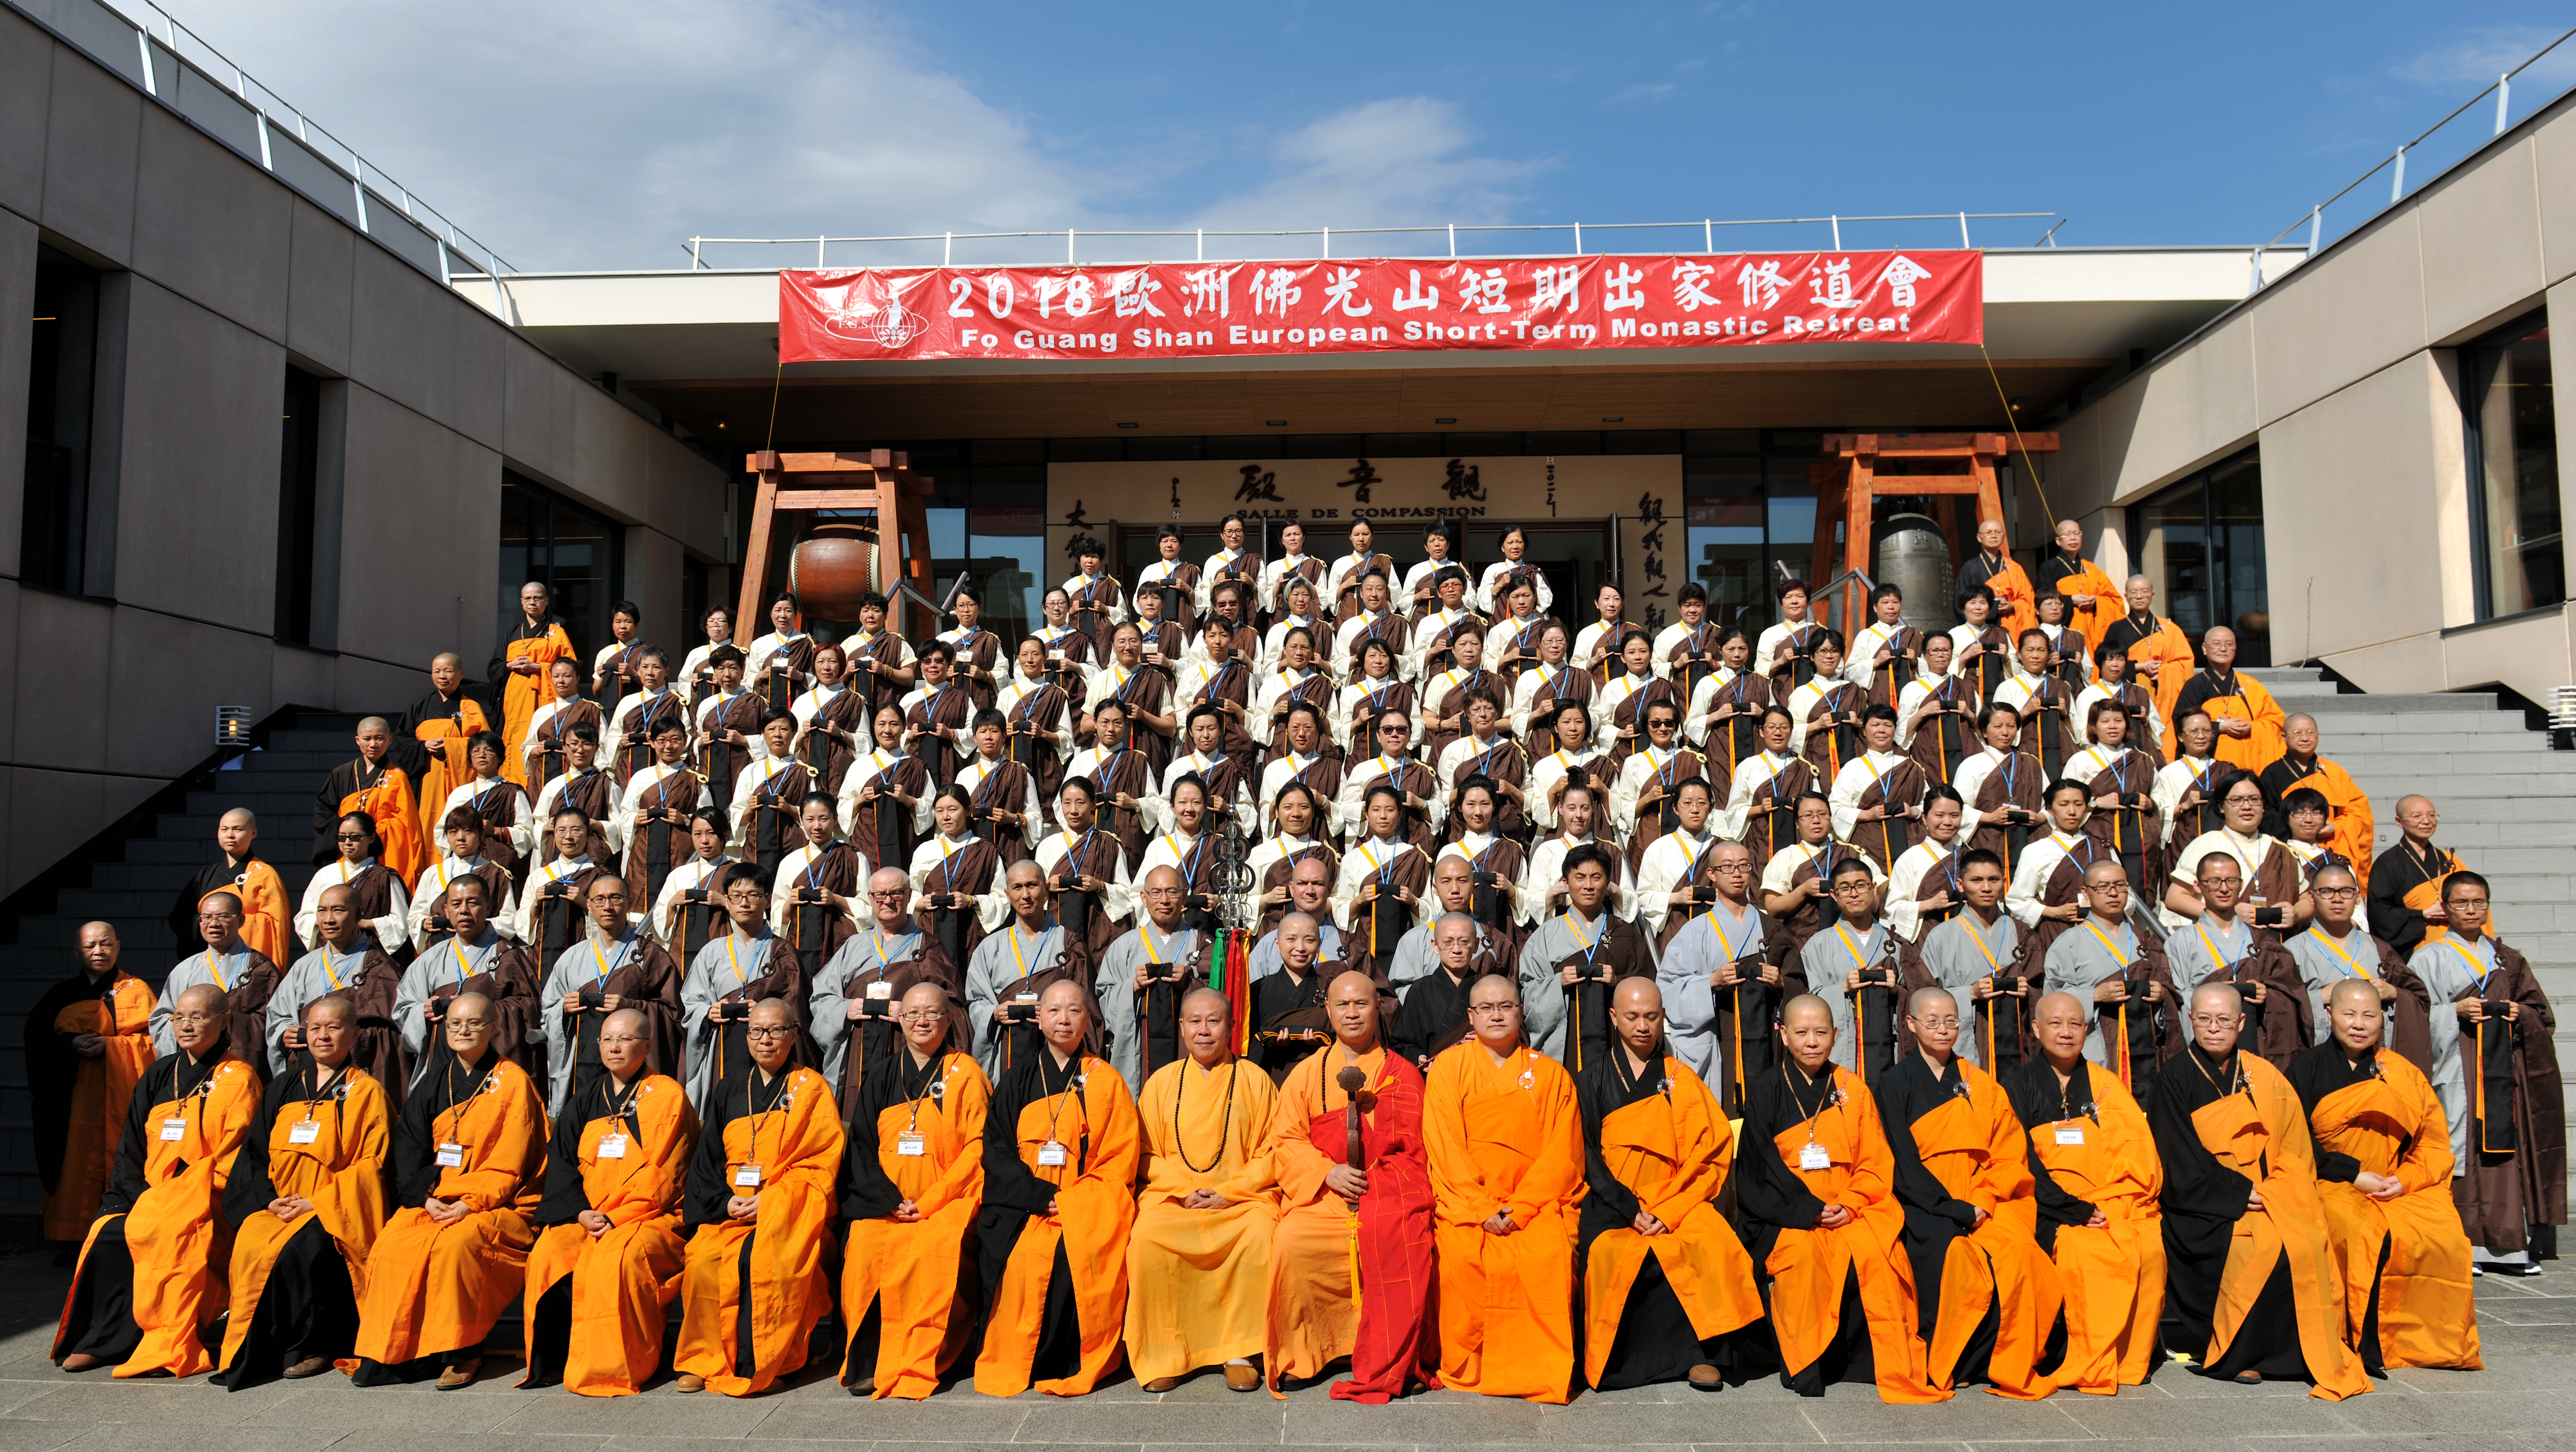 Preceptees and monastics pose for a group photo after the conferring the precepts ritual, Fo Guang Shan European Headquarters, 2018. Photo by Life News Agency.